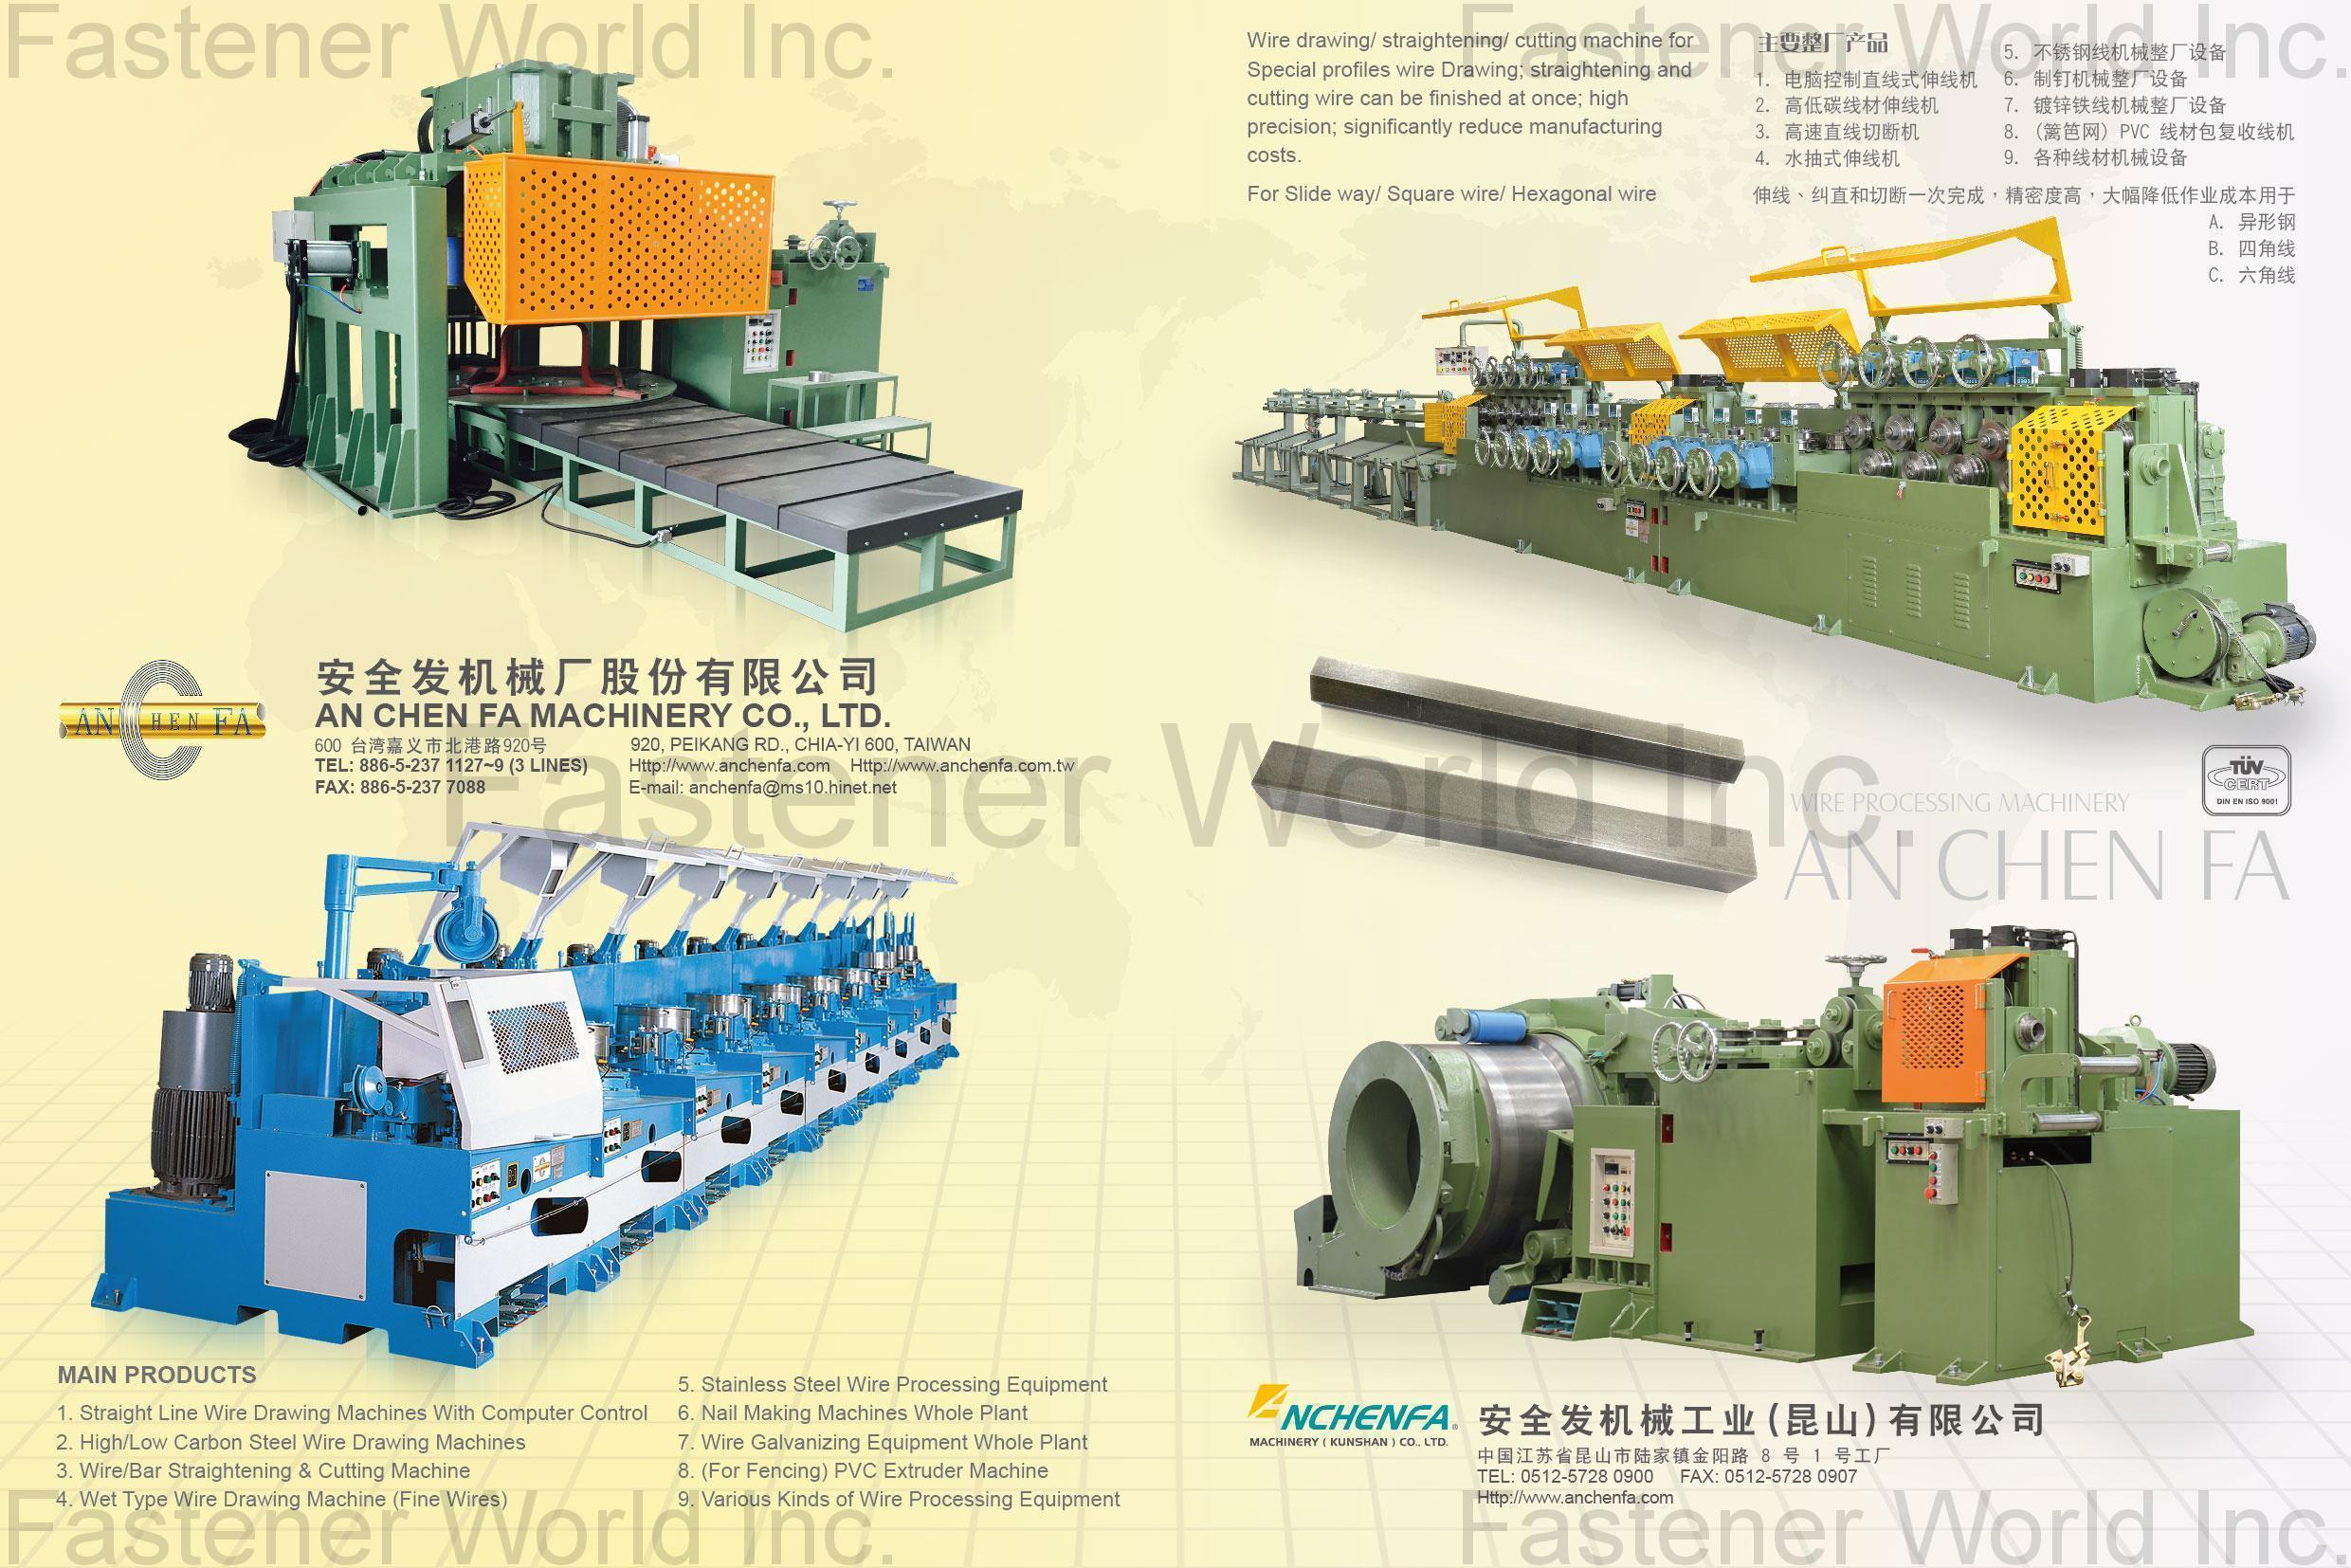 AN CHEN FA MACHINERY CO., LTD.